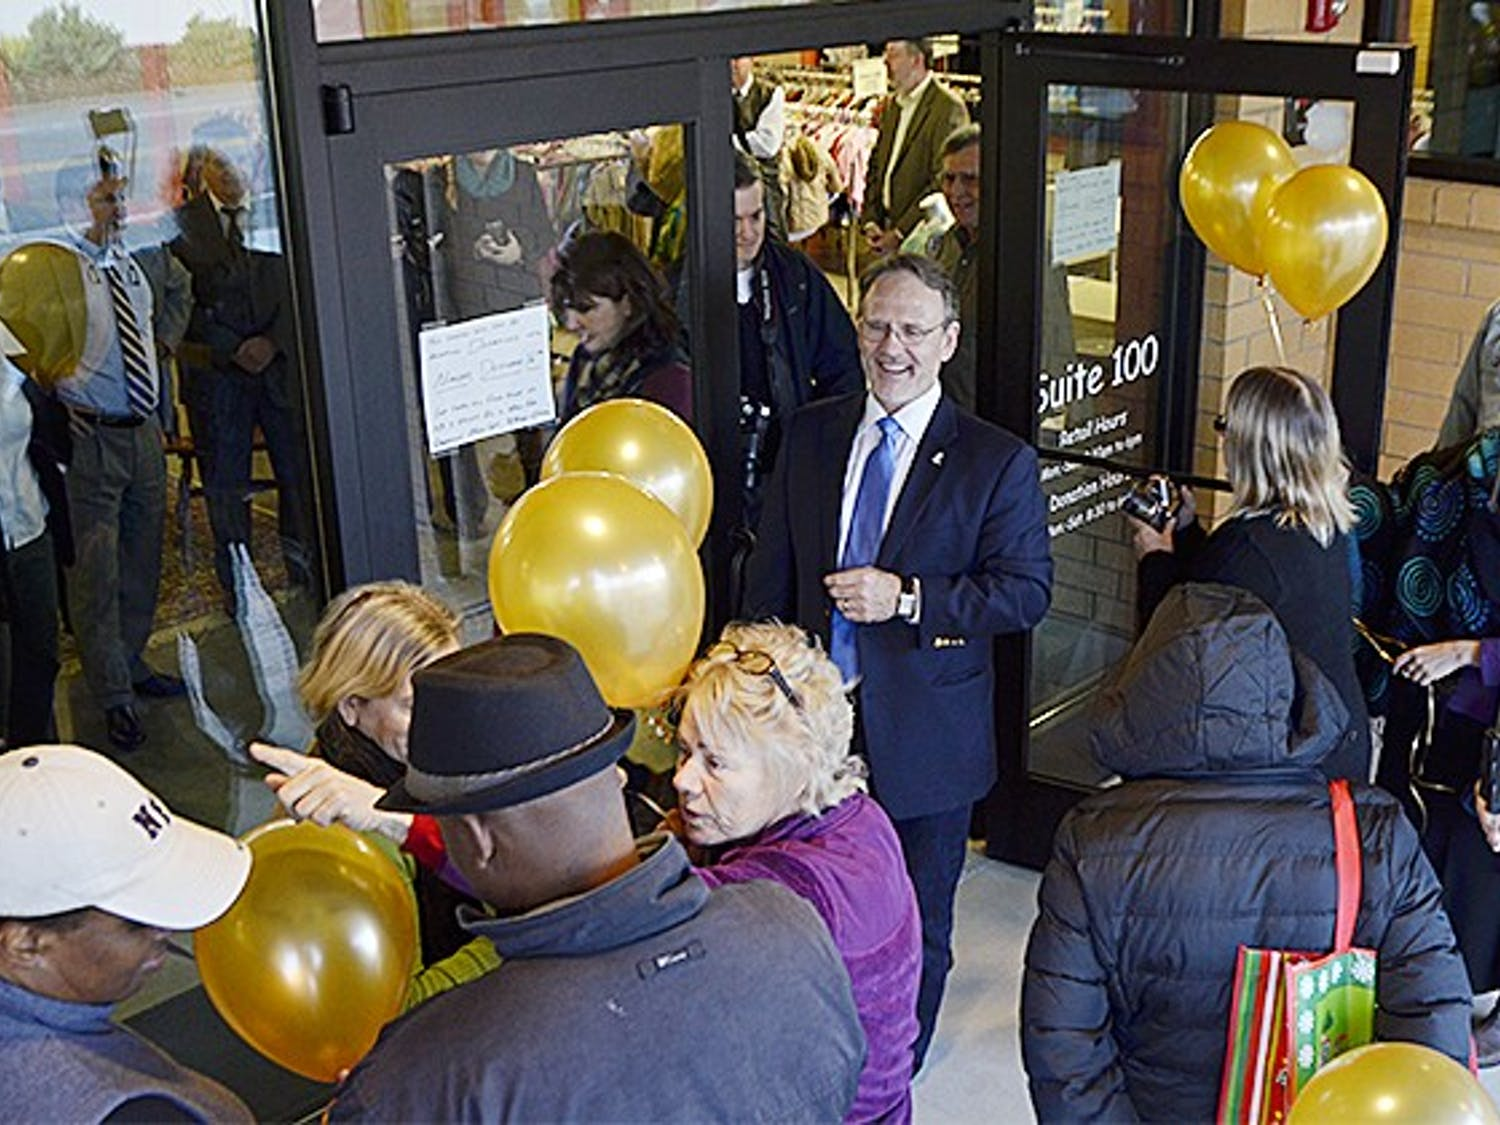 The PTA Thrift Shop opened on Monday morning with a ribbon cutting ceremony. Patrons lined up outside, eager to see the new building and the new stock.